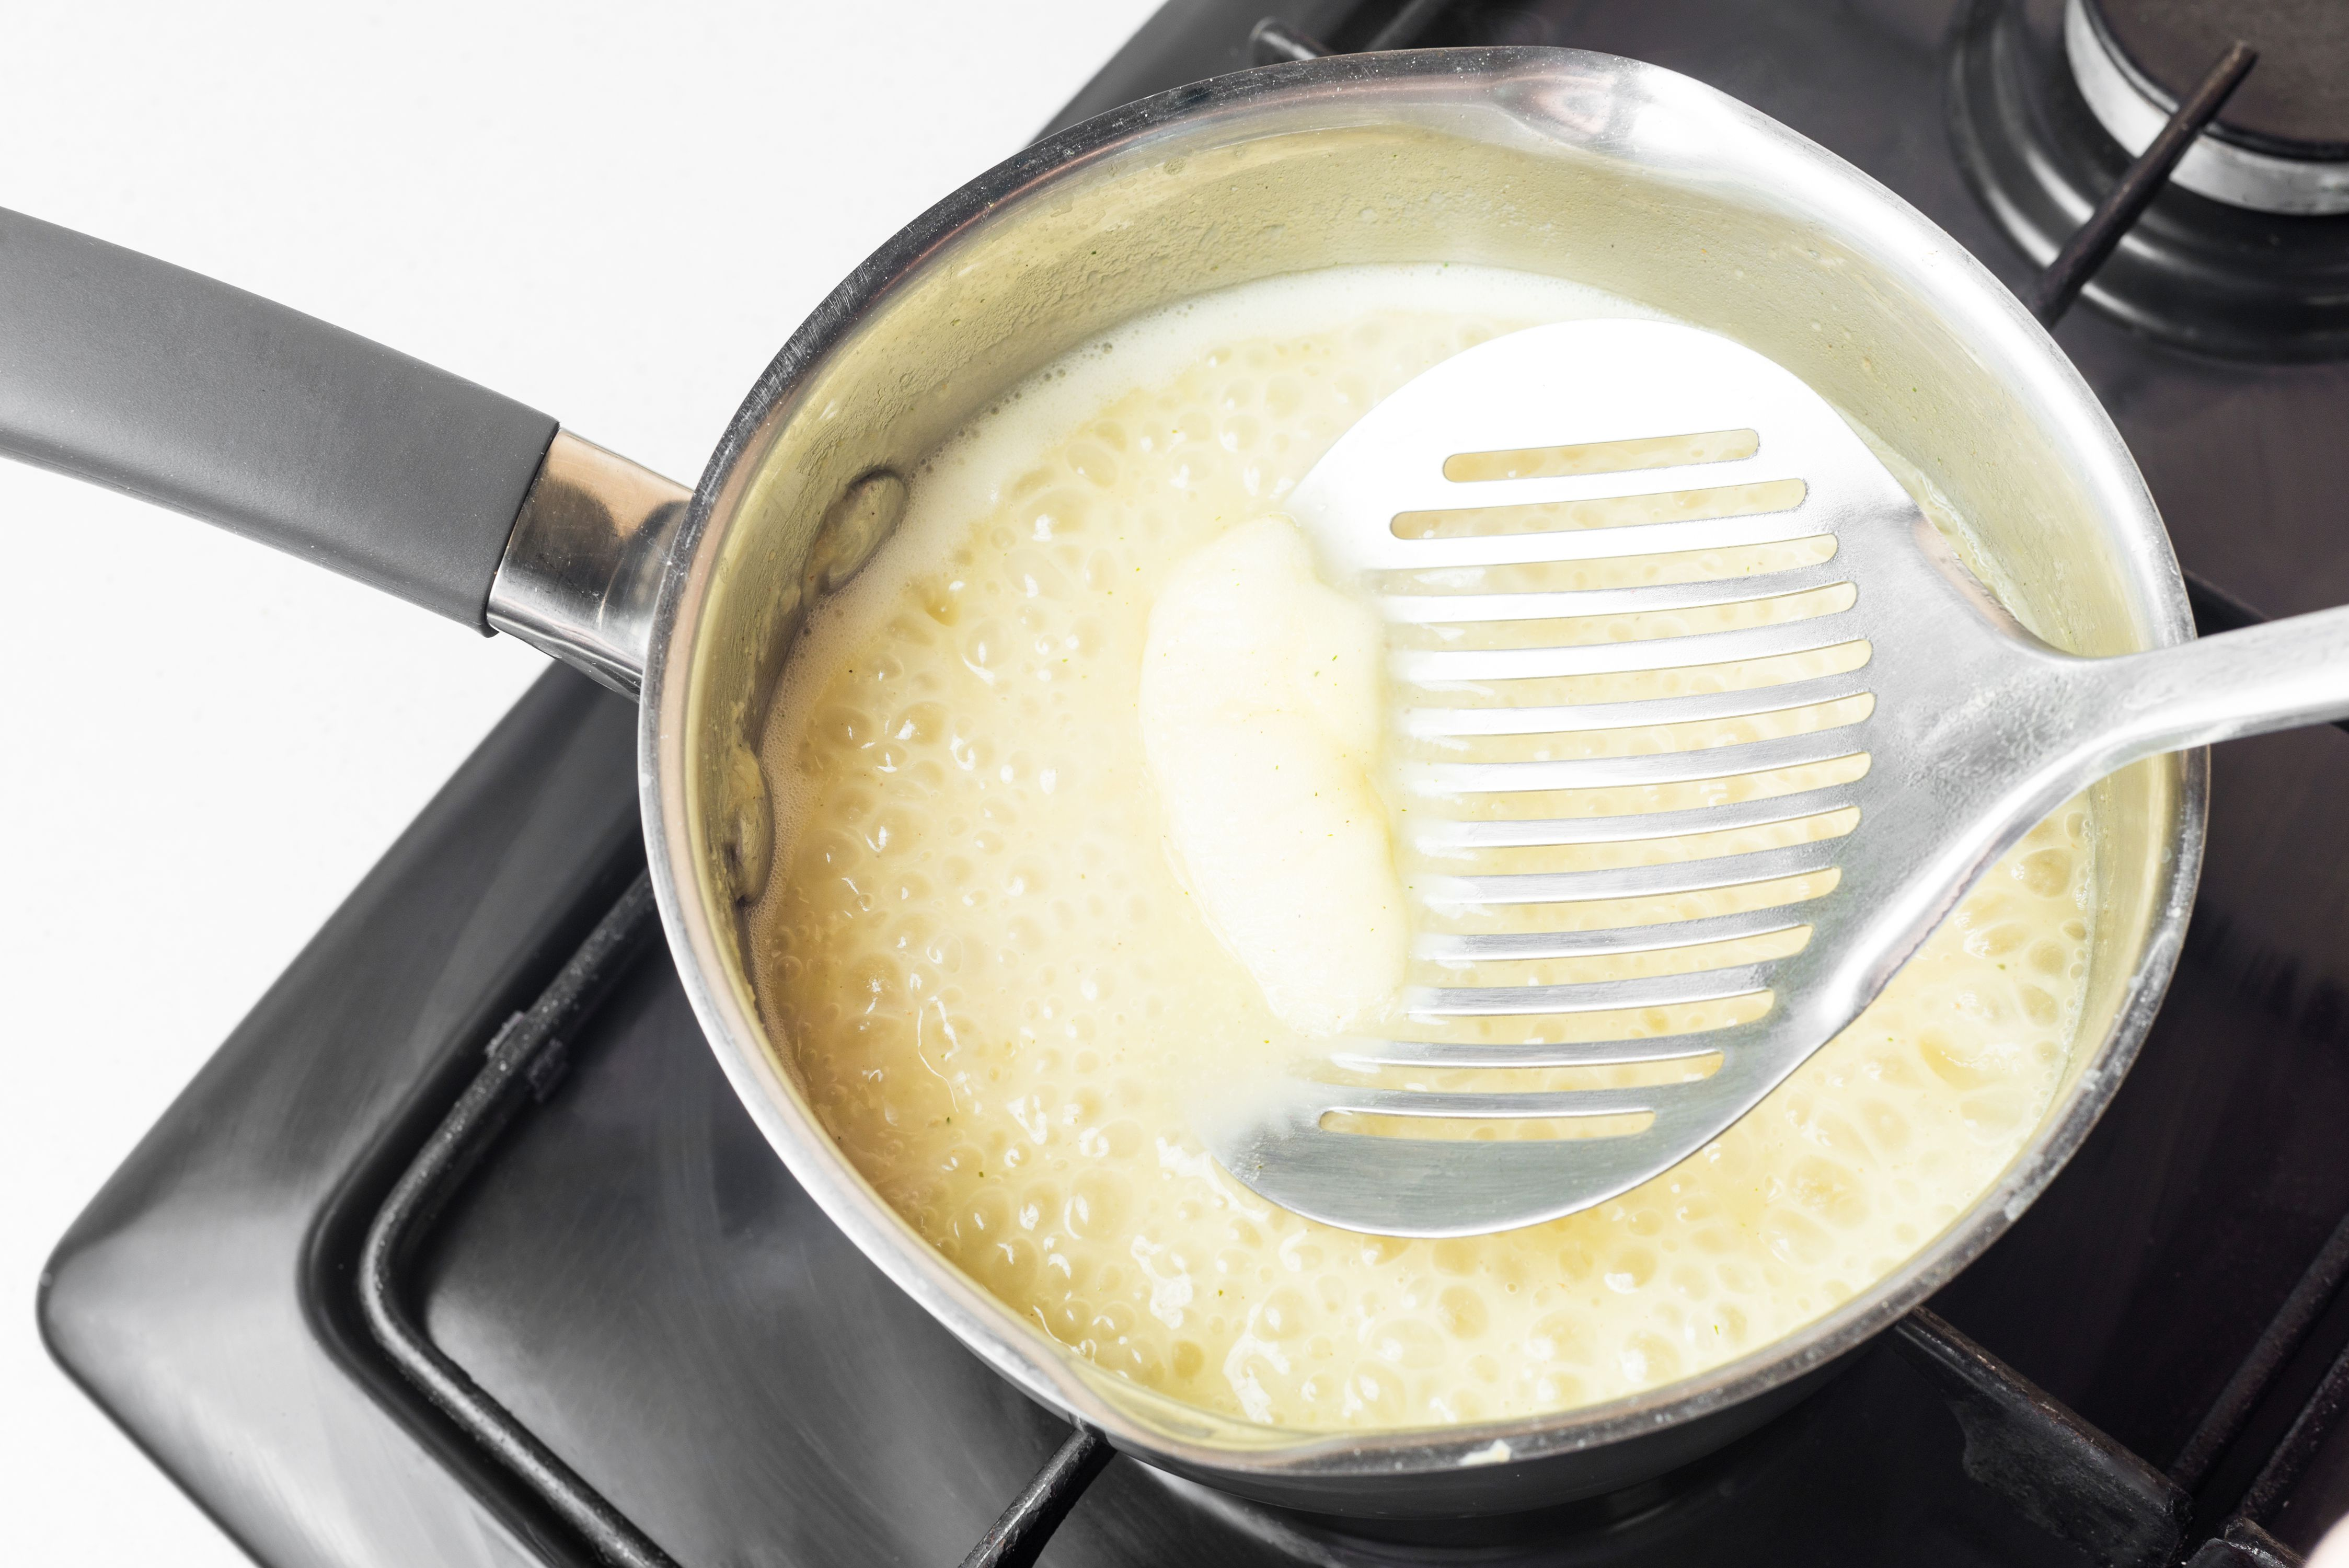 Simmer roux and use ladle to remove impurities